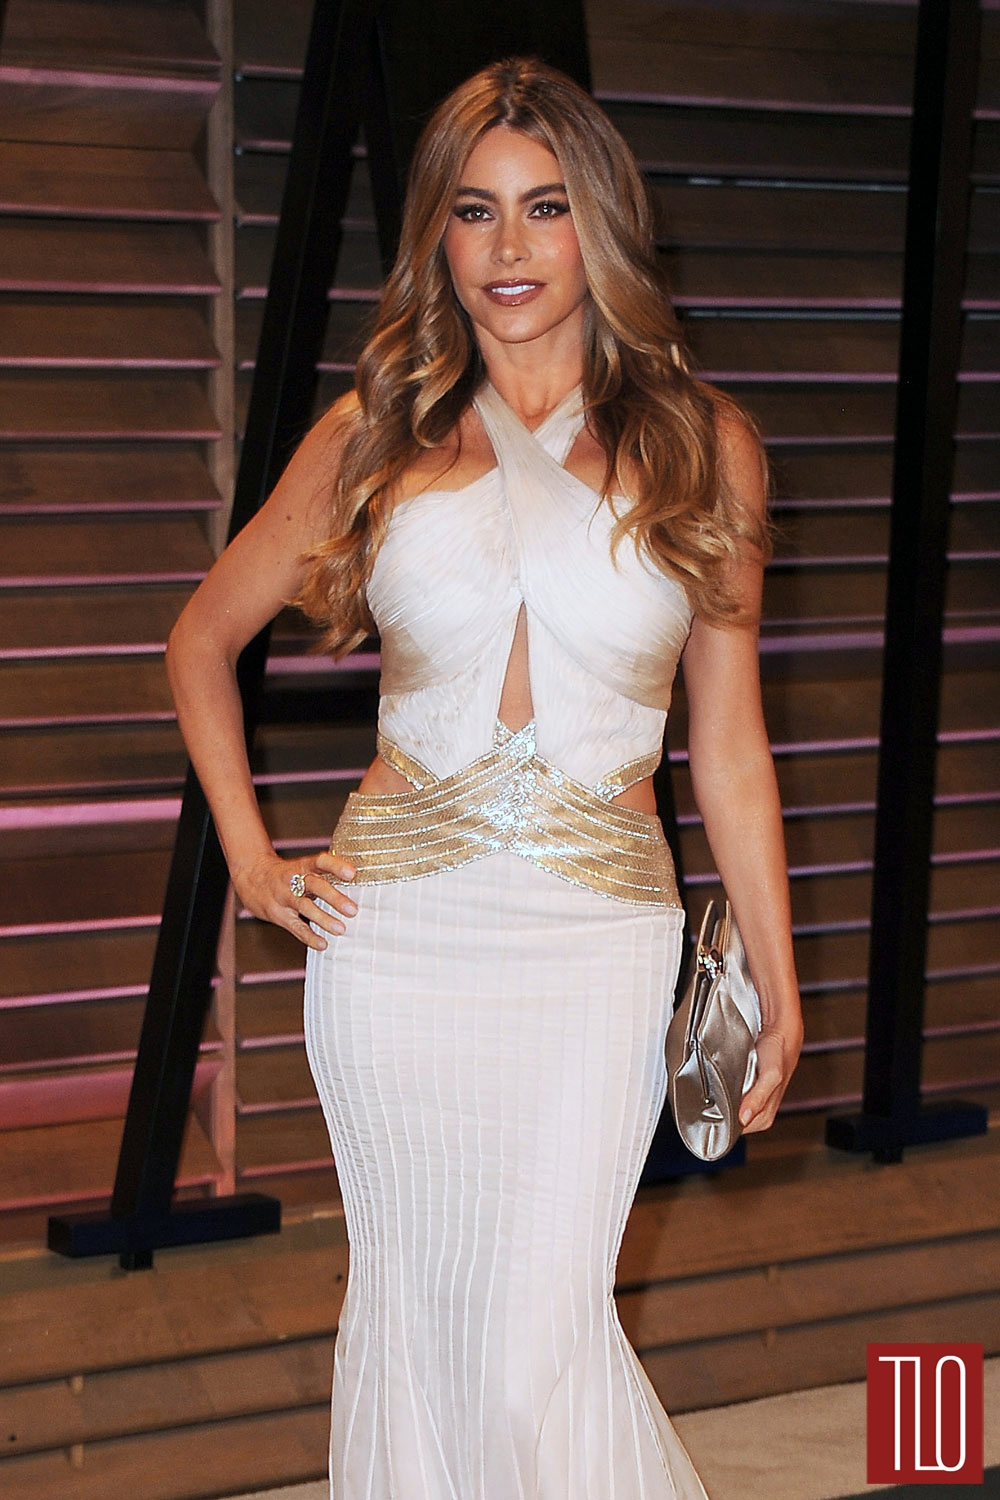 Sofia-Vergara-Robert-Cavalli-Oscars-2014-Vanity-Fair-Party-Tom-Lorenzo-Site-TLO (1)